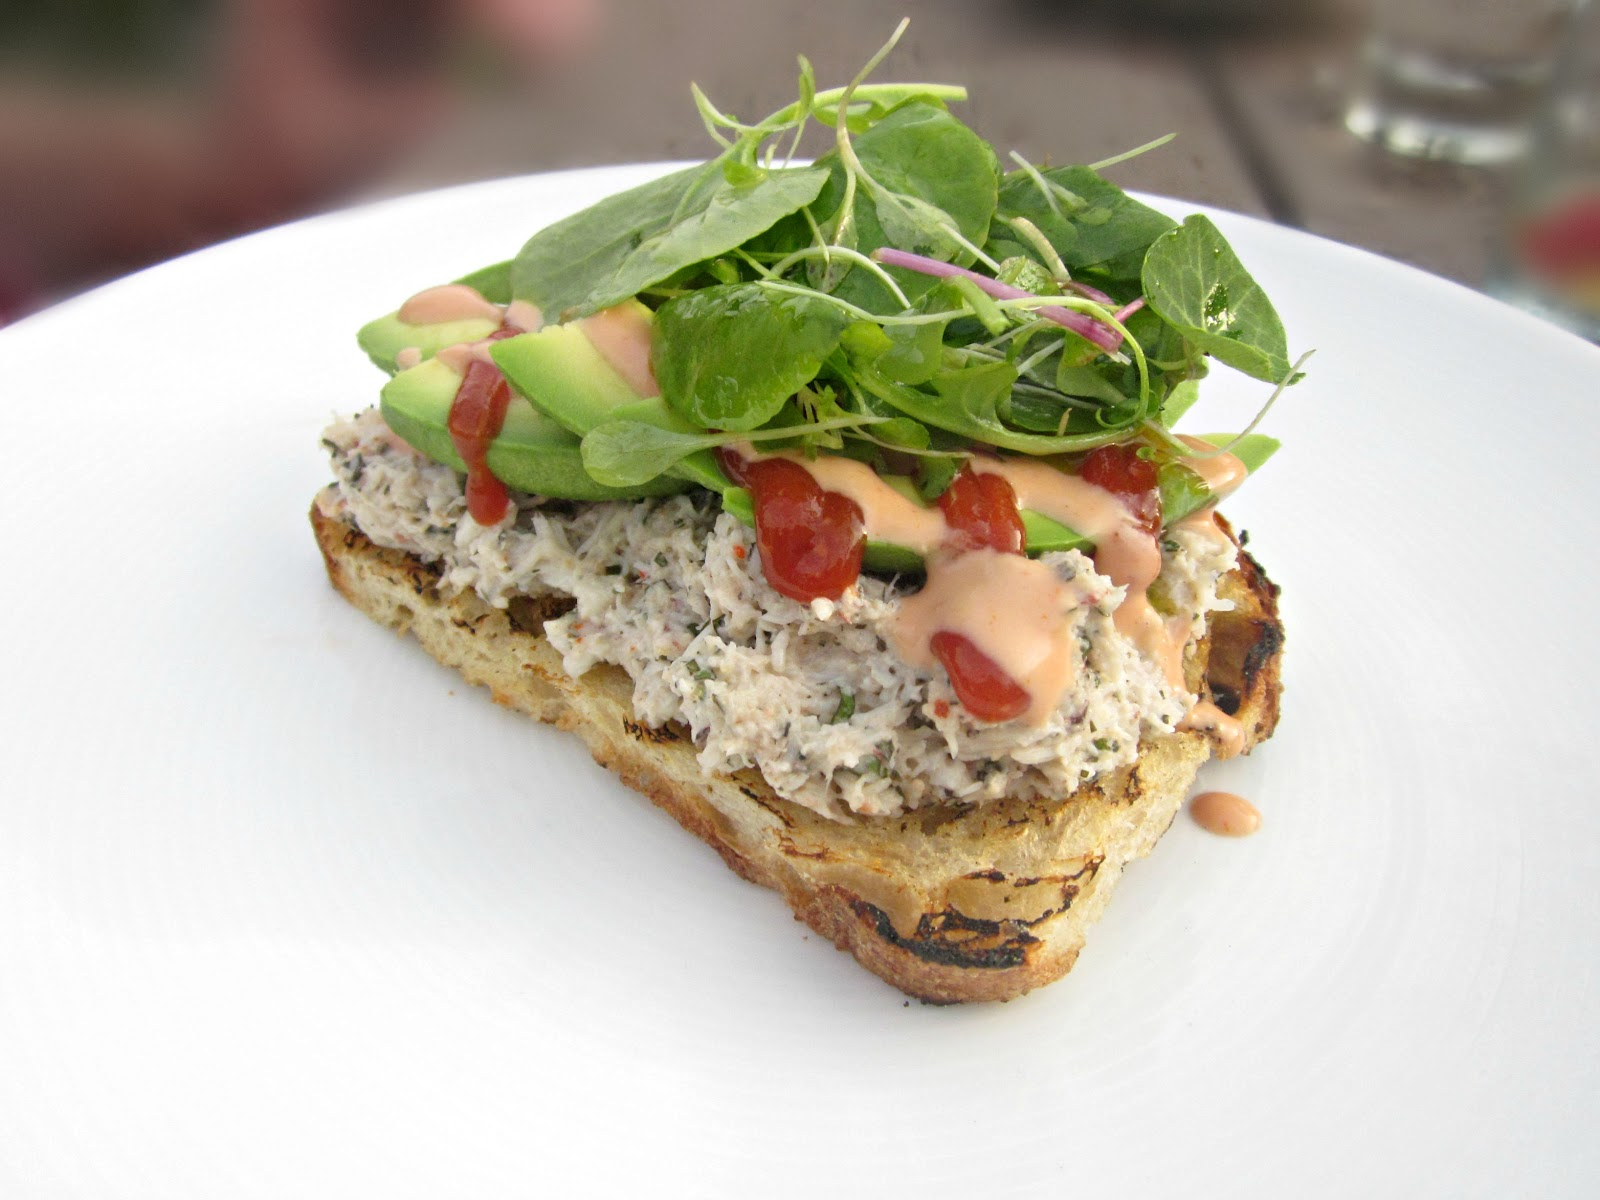 Our other appetizer was a Peekytoe crab toast with avocado, French ...